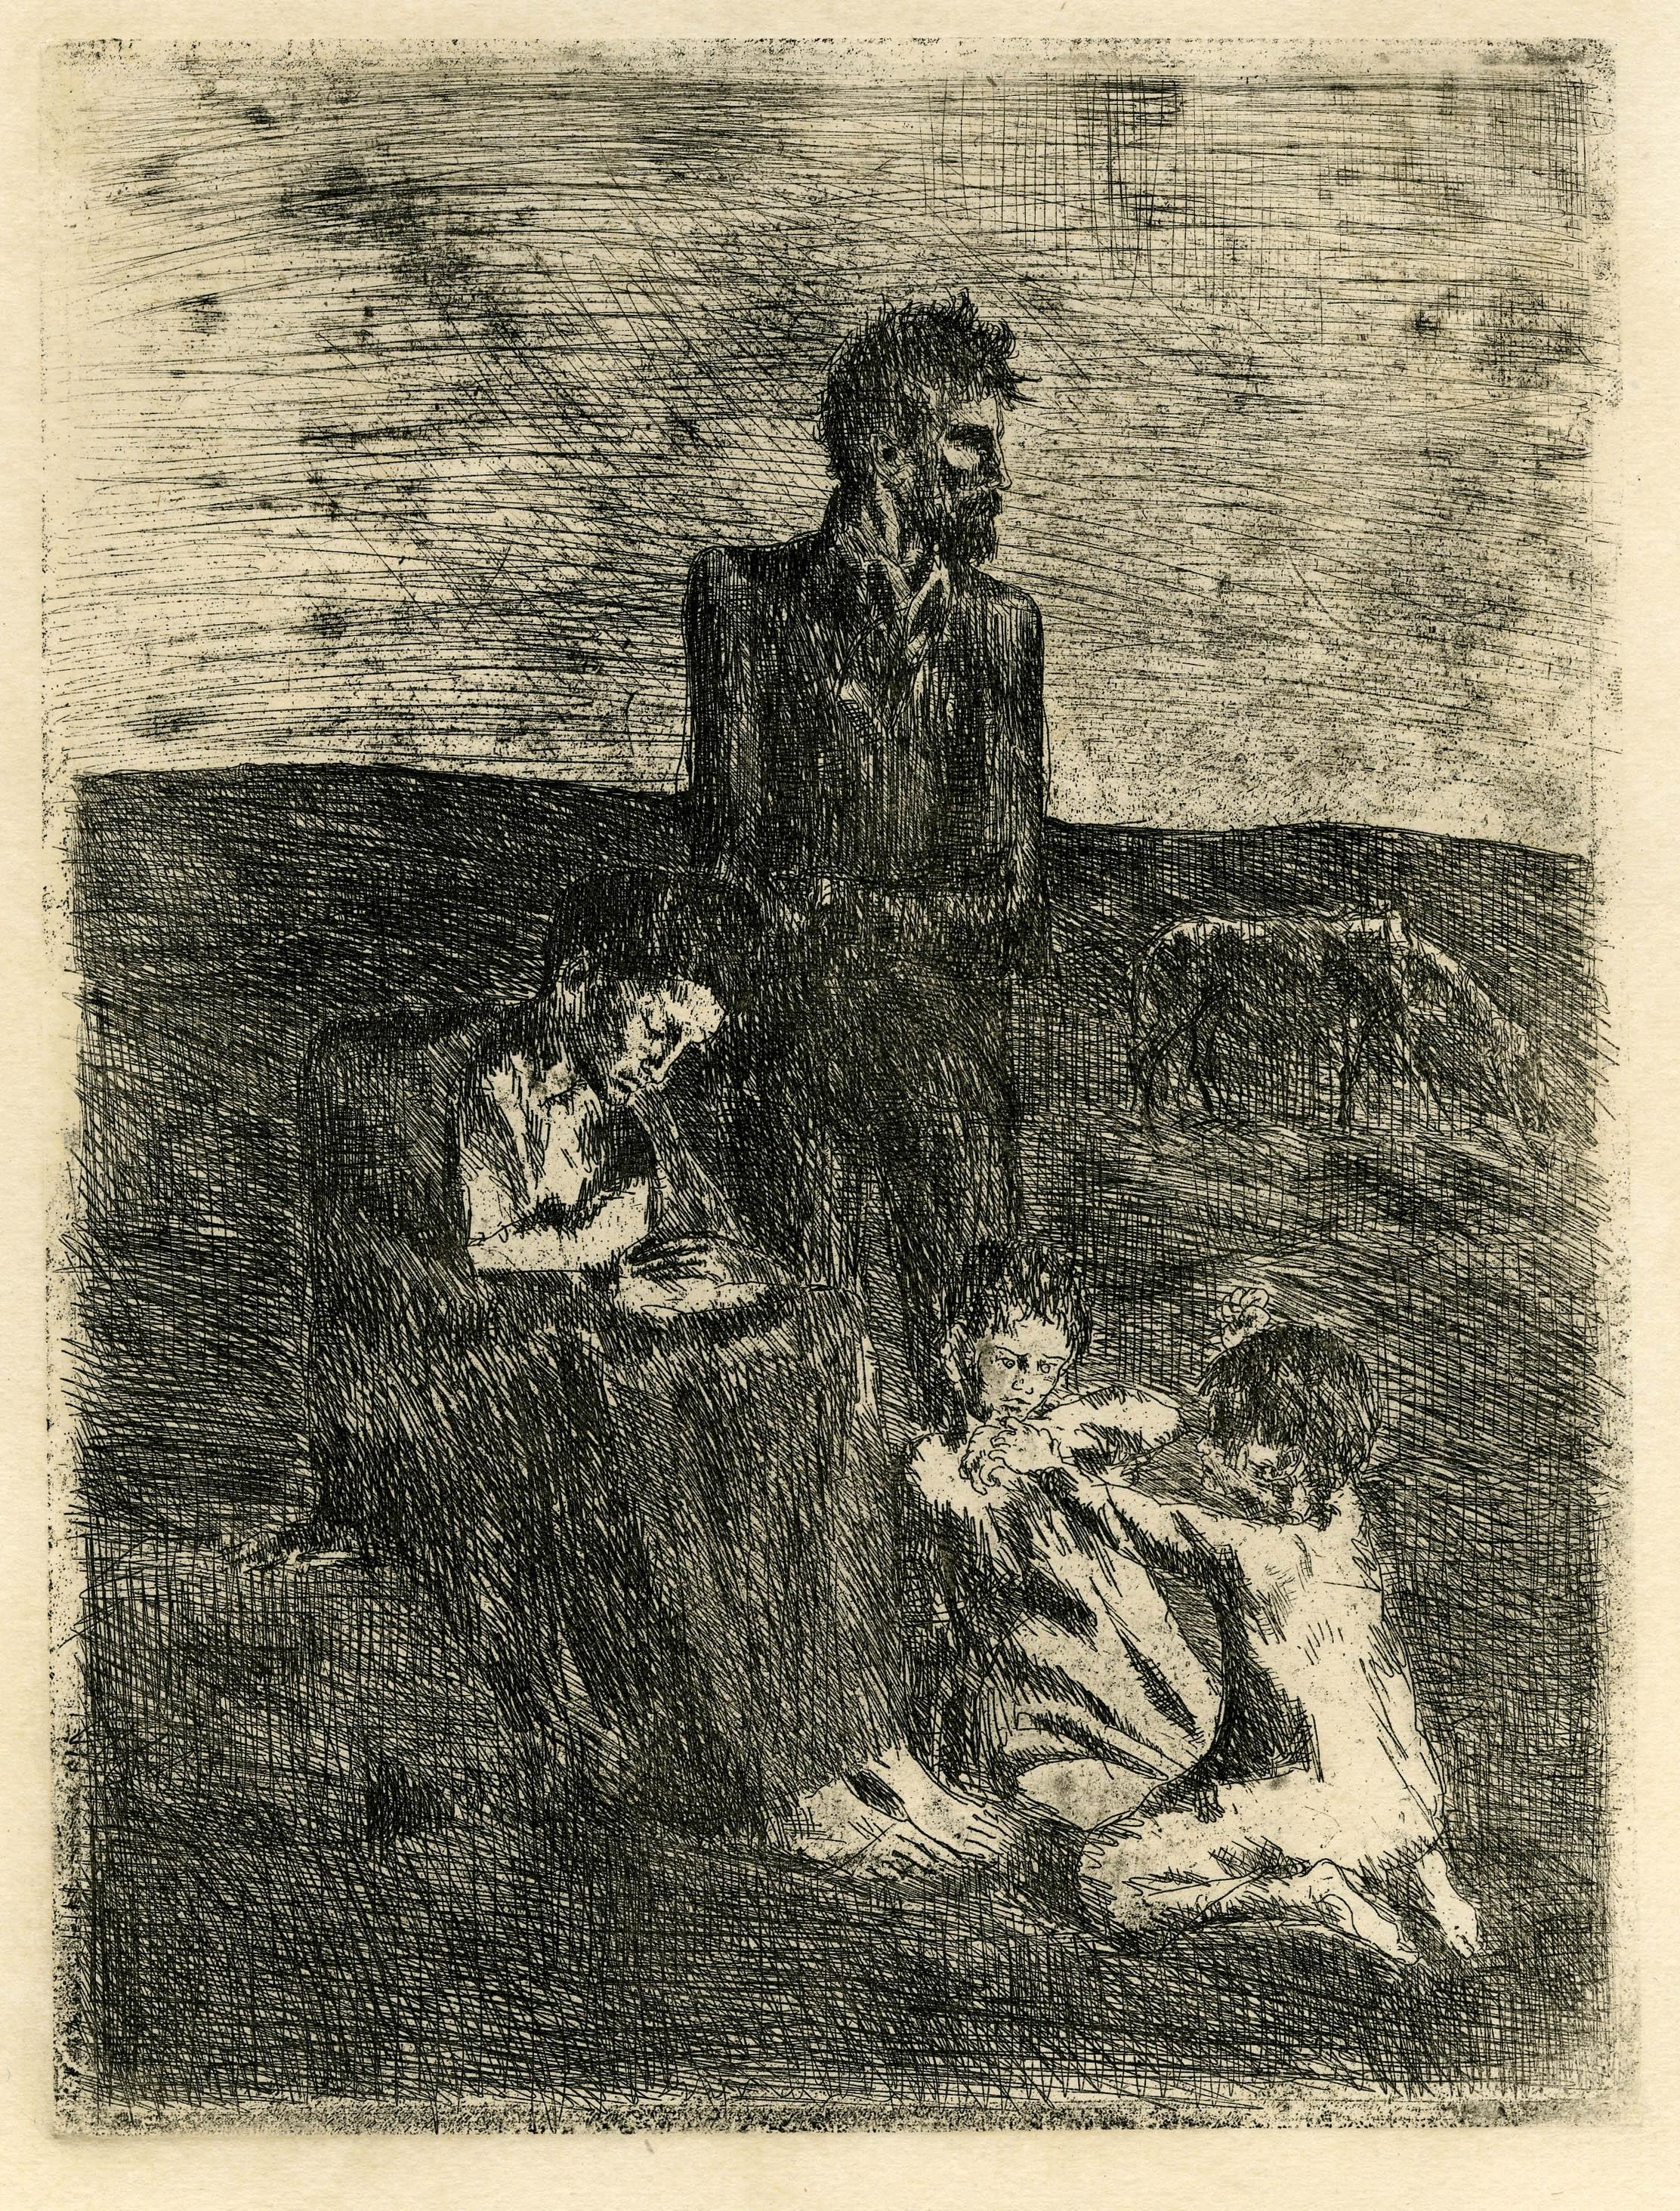 Les Pauvres (The Poor), from the famous Blue Period